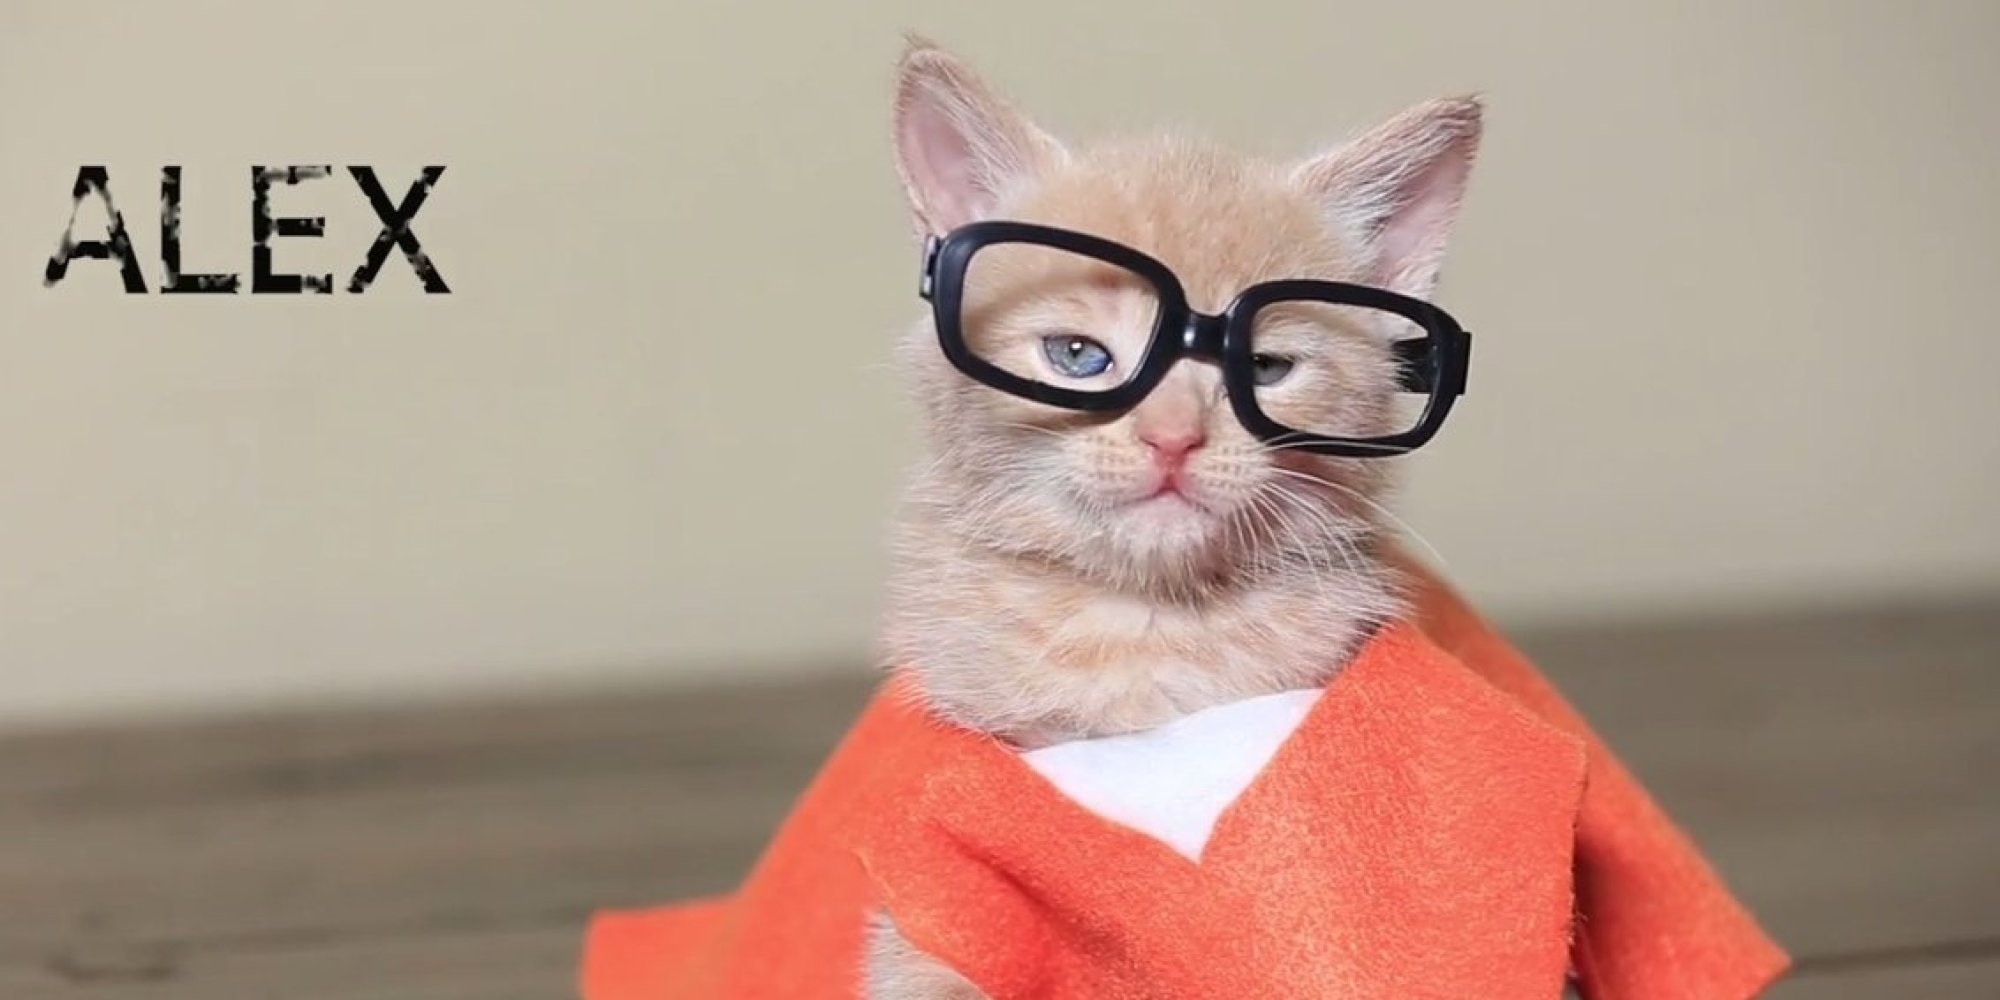 Orange is the new black with kittens is the purr fect way to start